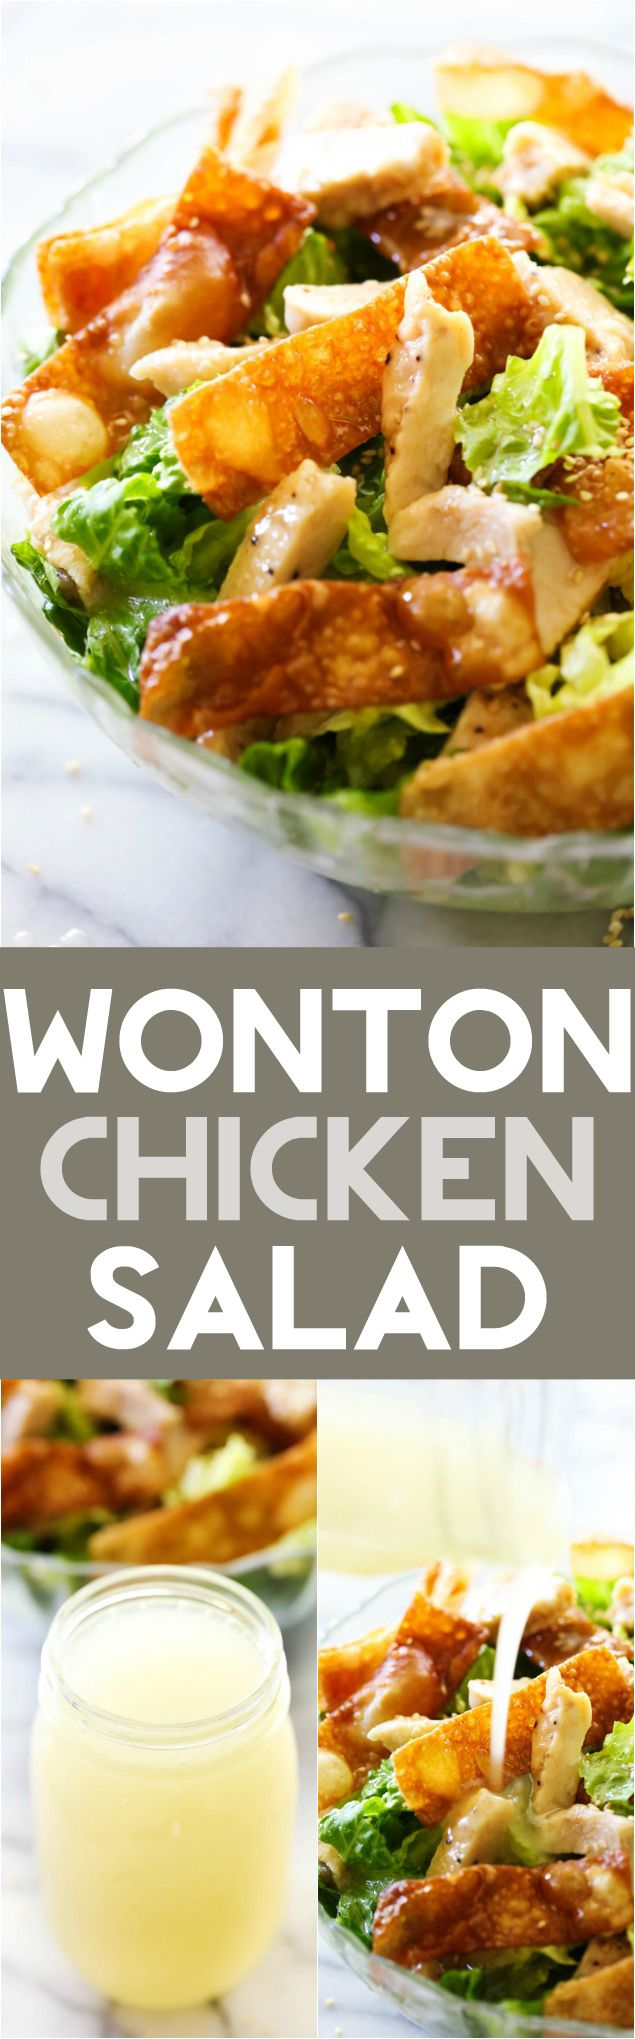 Wonton Chicken Salad - The crisp wontons paired with chicken and the incredible dressing are such a tasty combination of flavors, ingredients and textures!